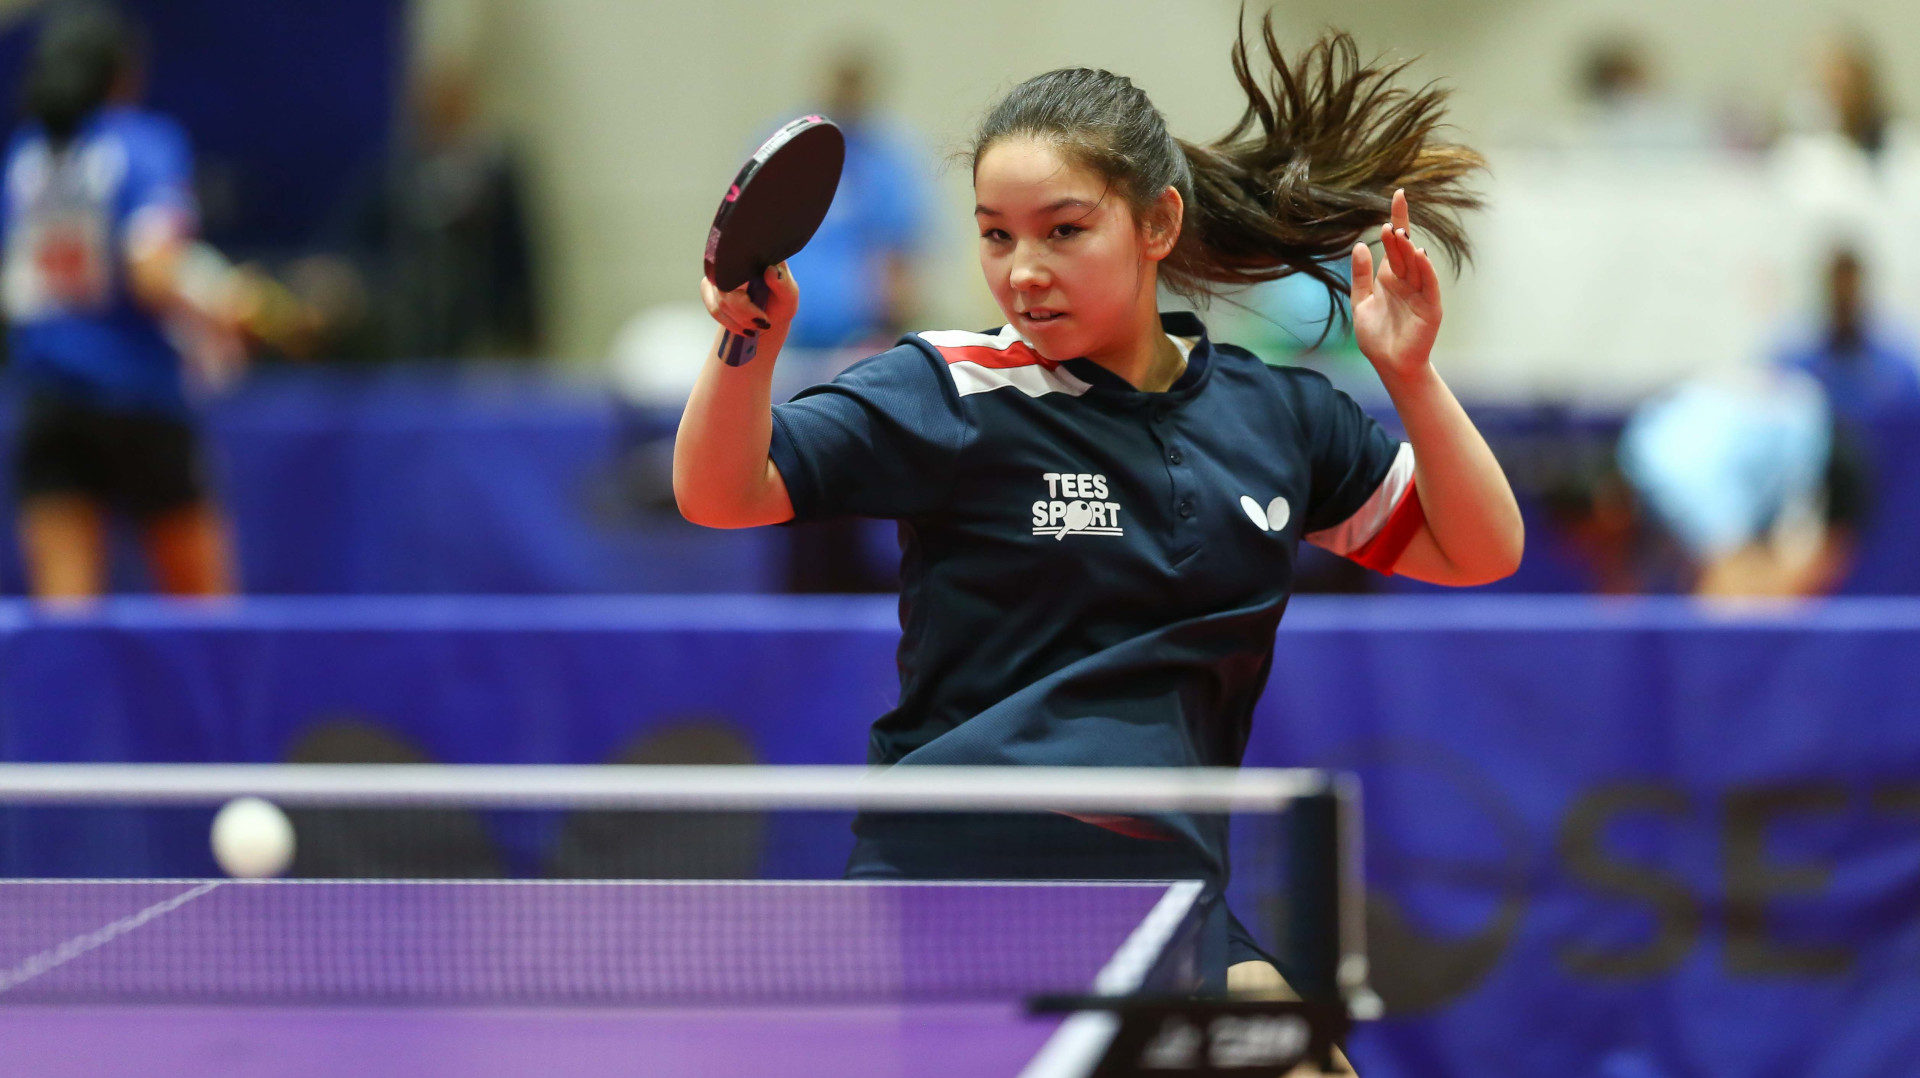 Teenage girl in action playing table tennis